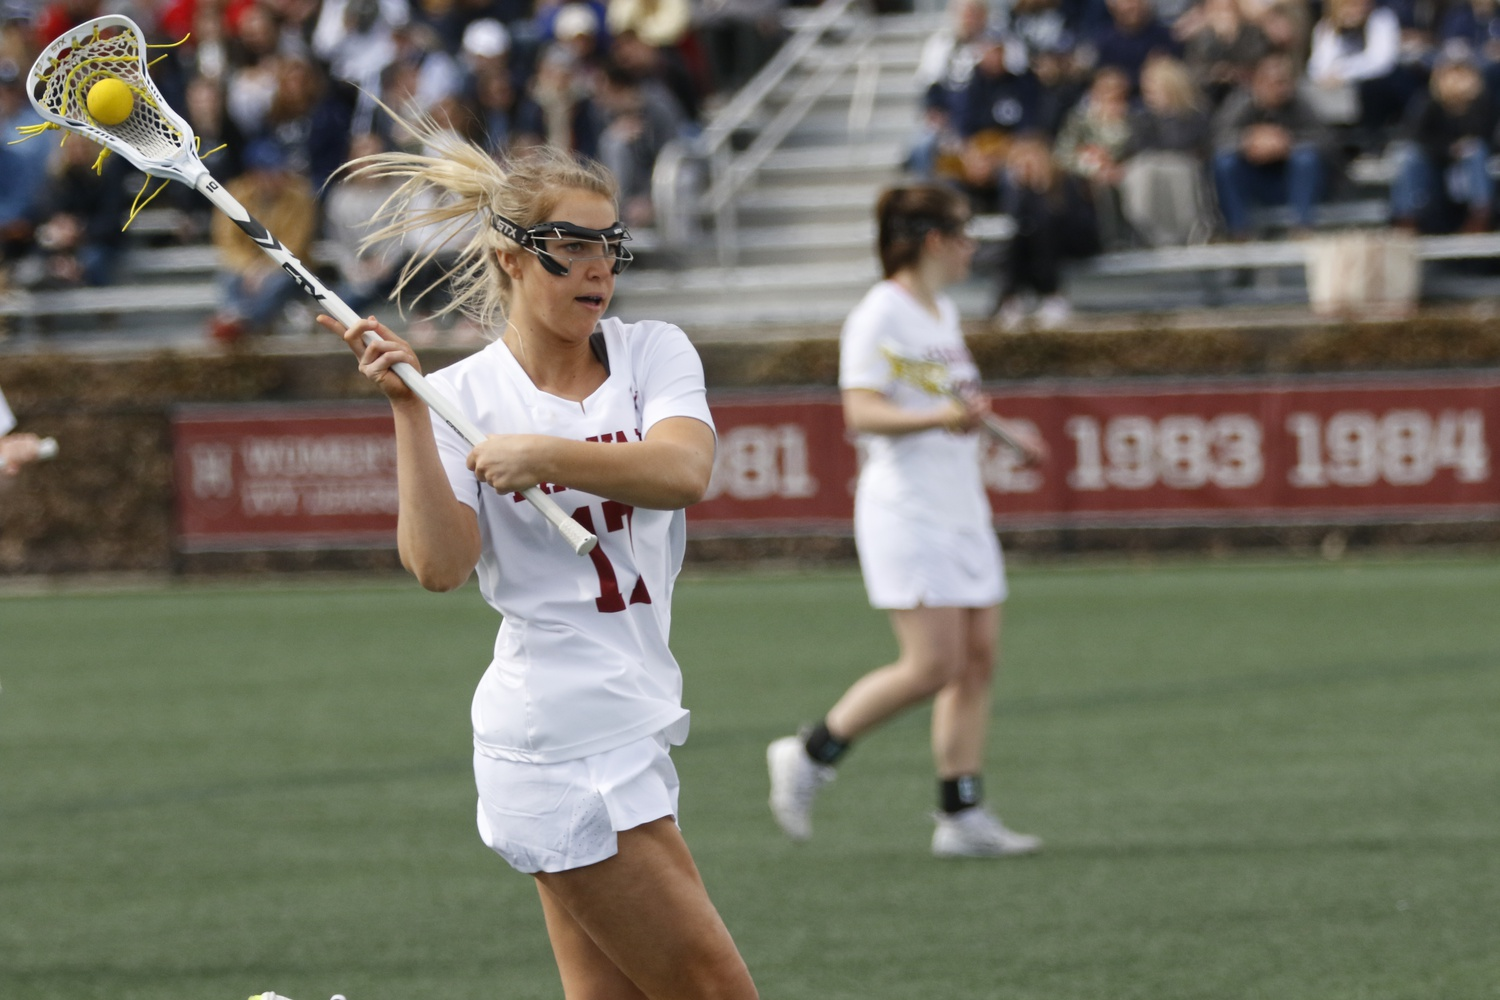 To date, junior Hannah Keating has tallied 40 goals in her Crimson career.